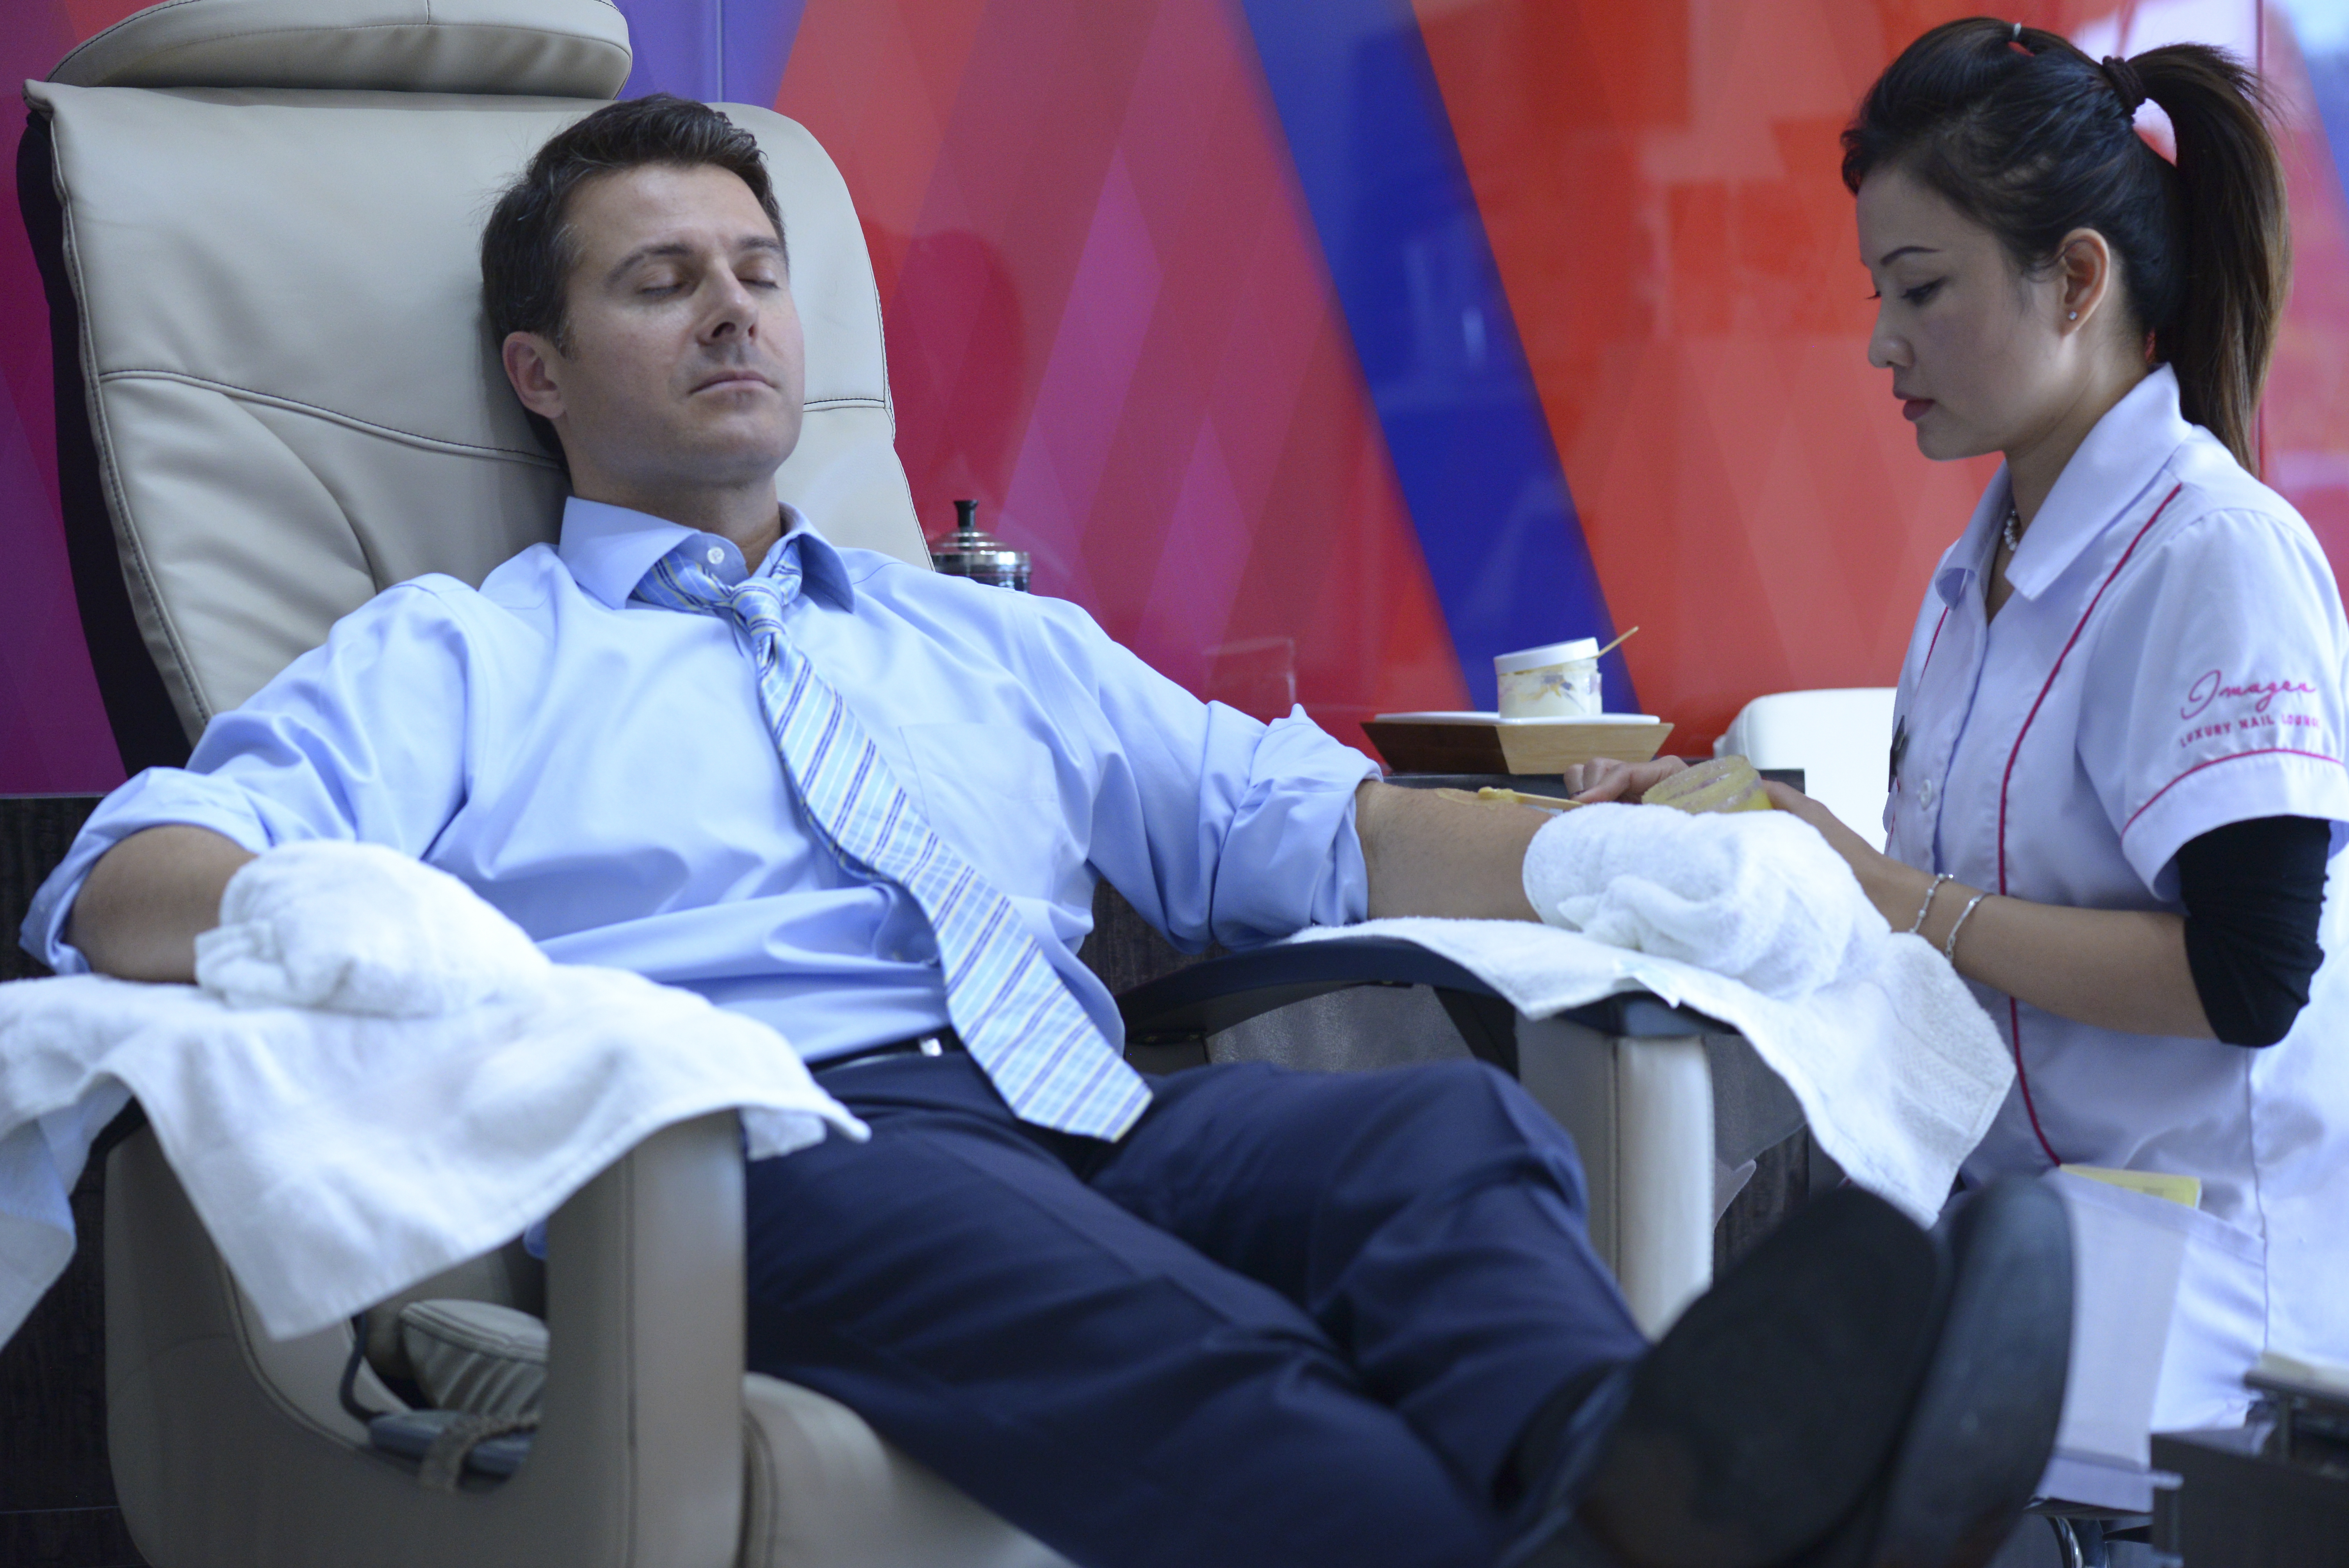 A customer relaxes while getting a Man-I-Cure at Images Nail Salon